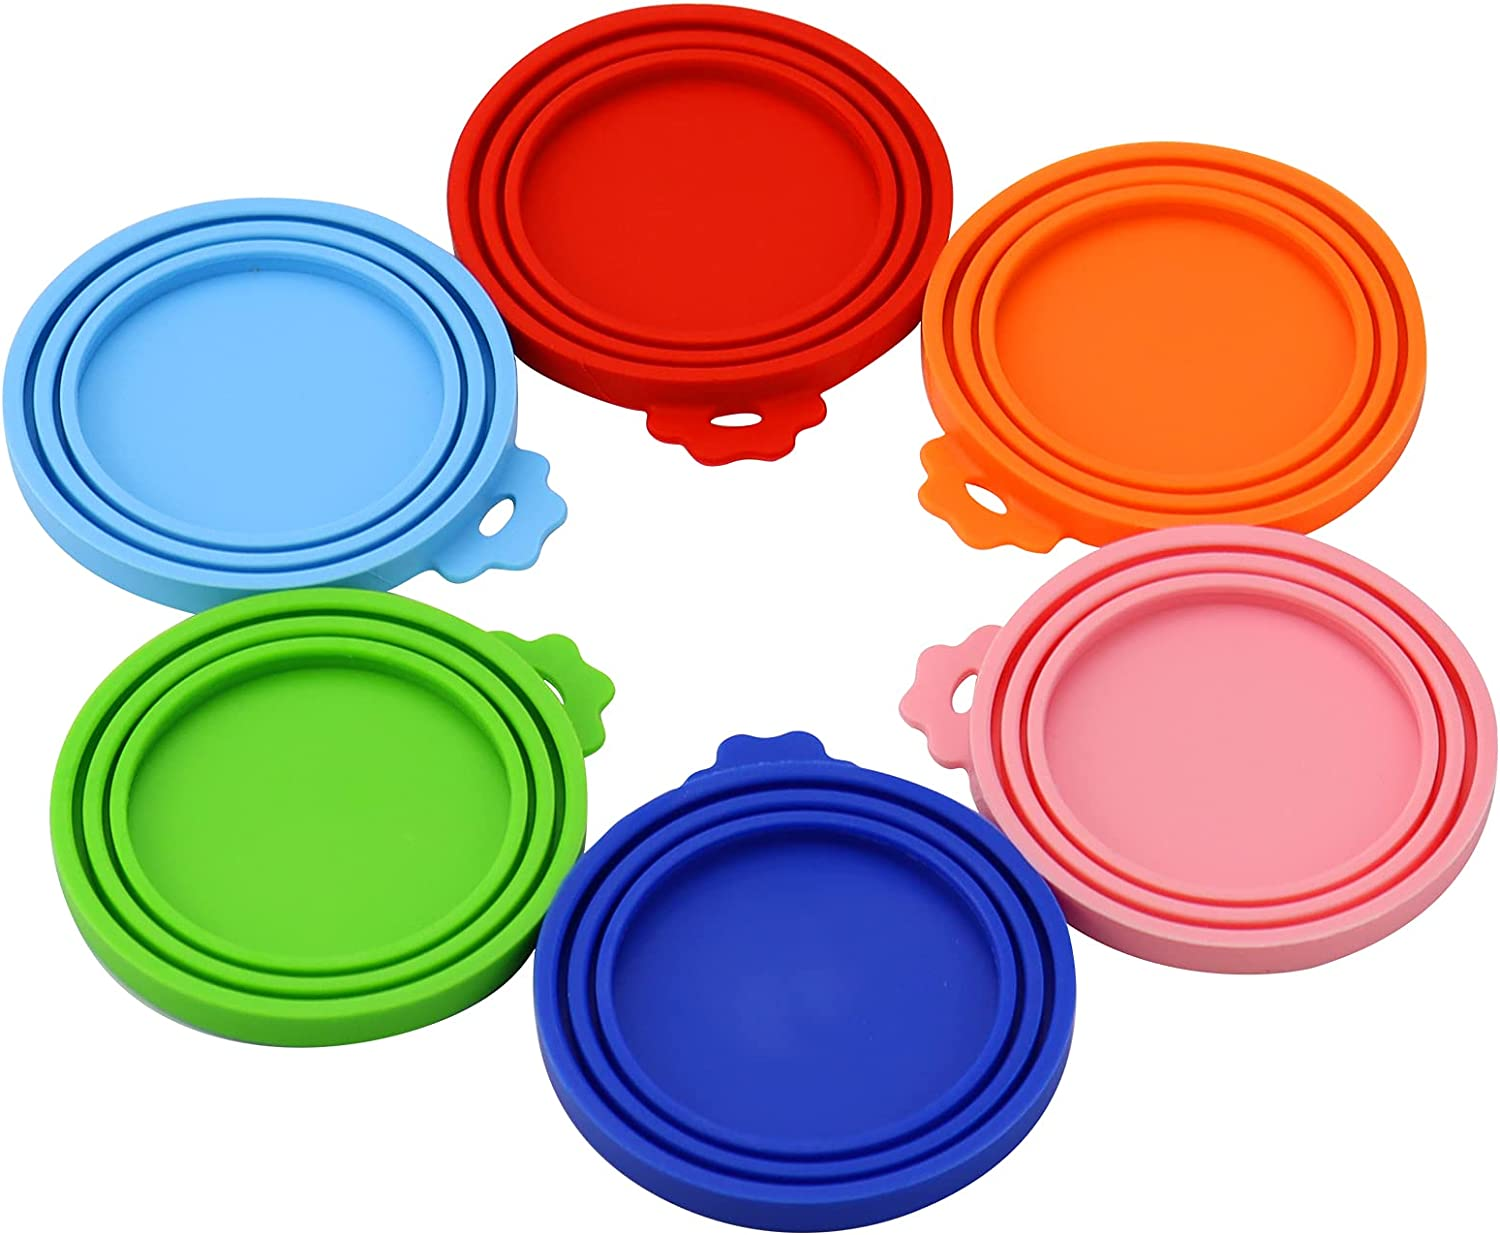 Nanaborn Pet Food Can Lids Silicone for Variety Cat and Dog Small 3-5.5 OZ (One fit 3 Standard Size Food Cans) 6Pcs